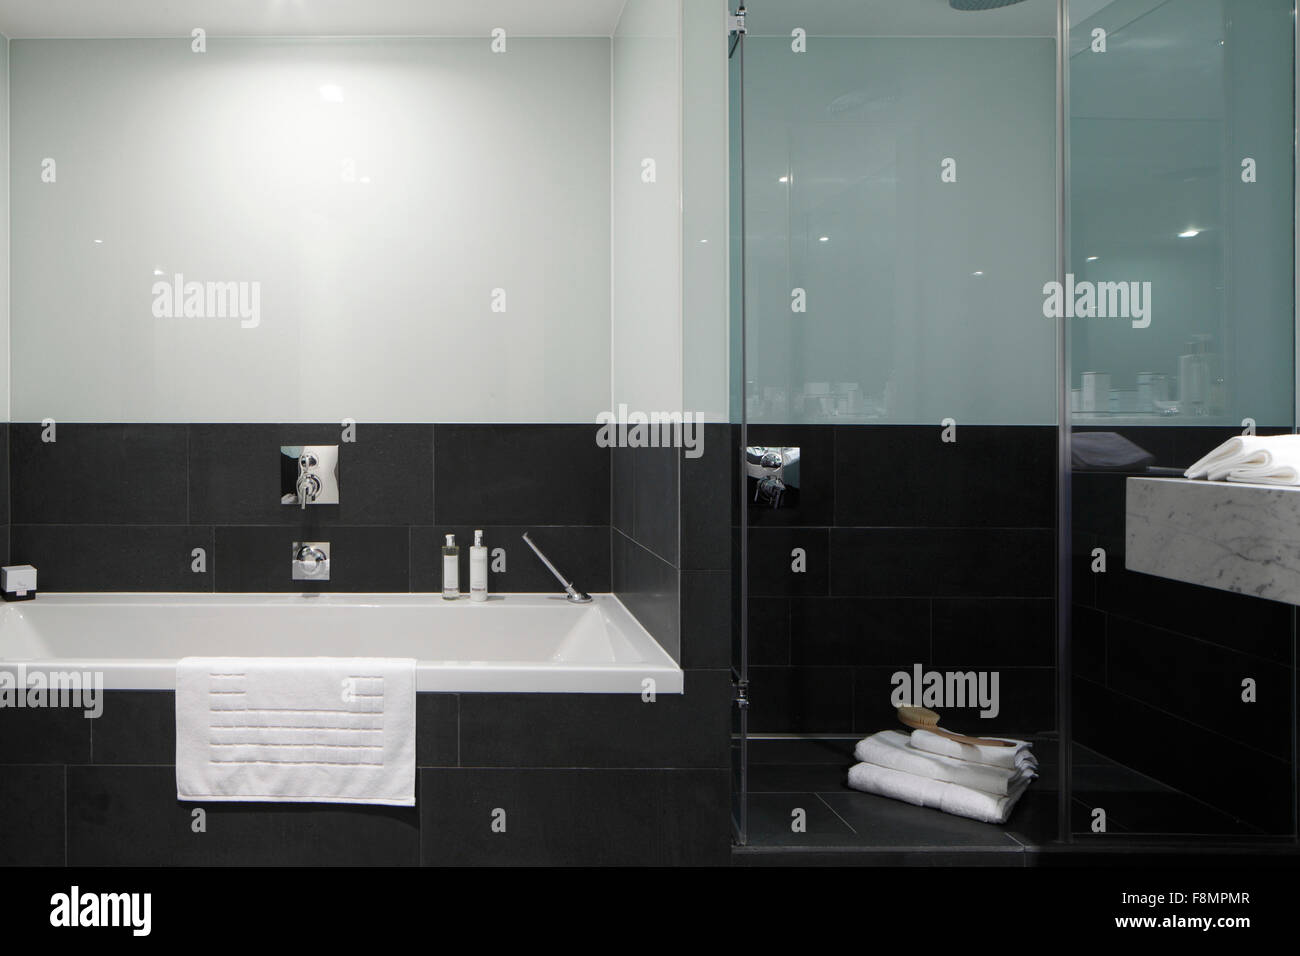 Bath and shower cubicle with charcoal grey tiling - Stock Image